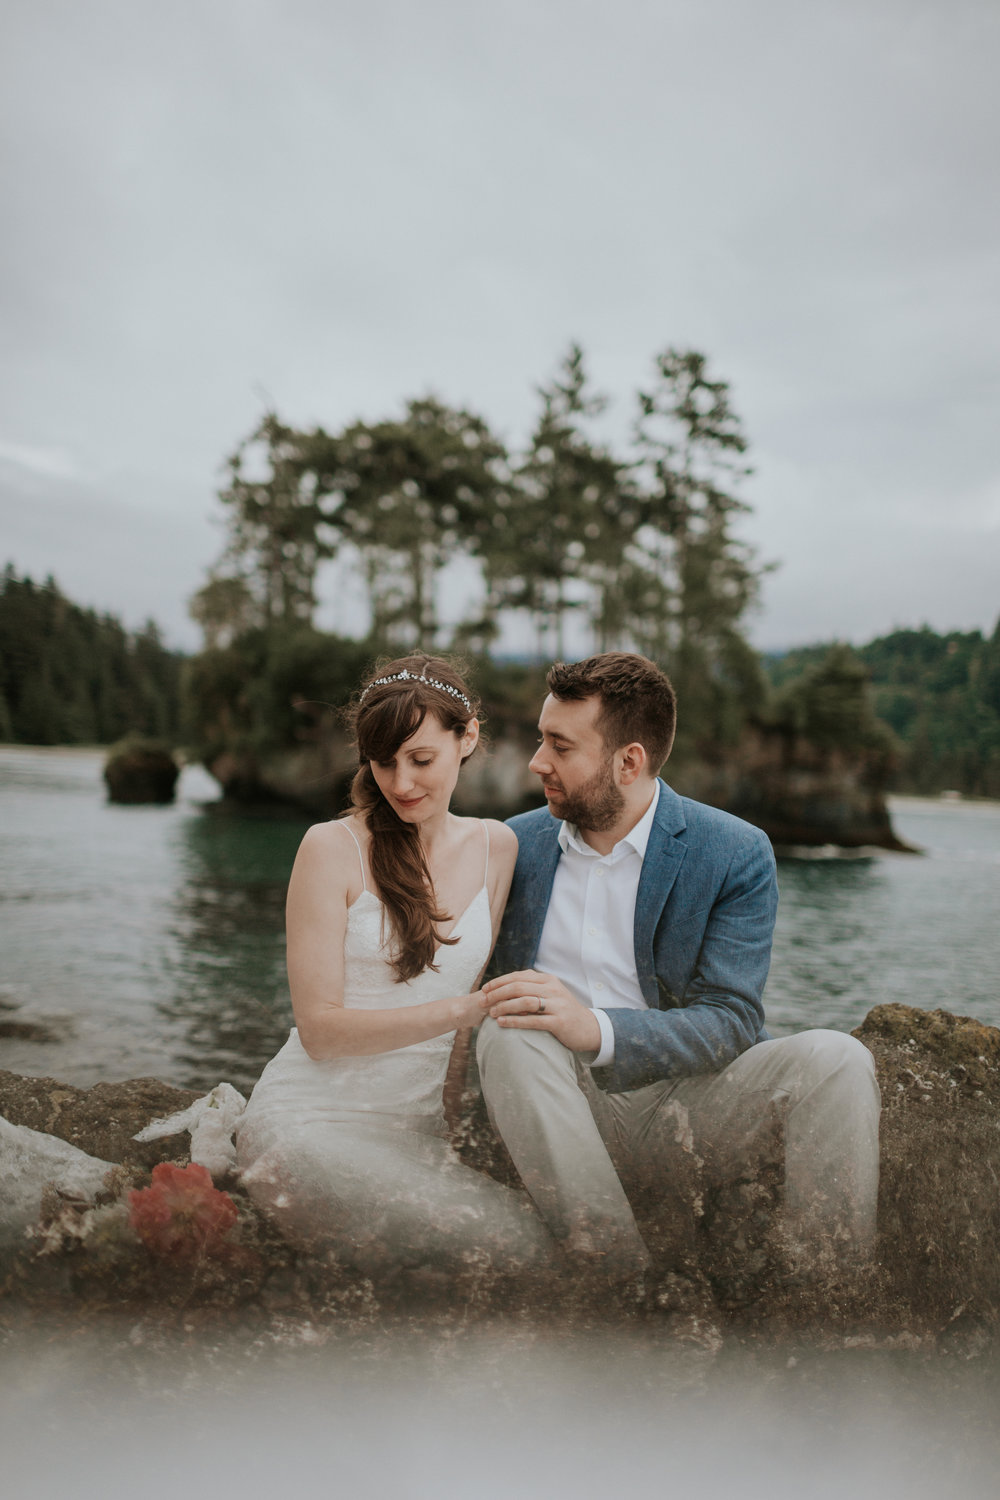 PNW-elopement-wedding-engagement-olympic national park-port angeles-hurricane ridge-lake crescent-kayla dawn photography- photographer-photography-kayladawnphoto-319.jpg